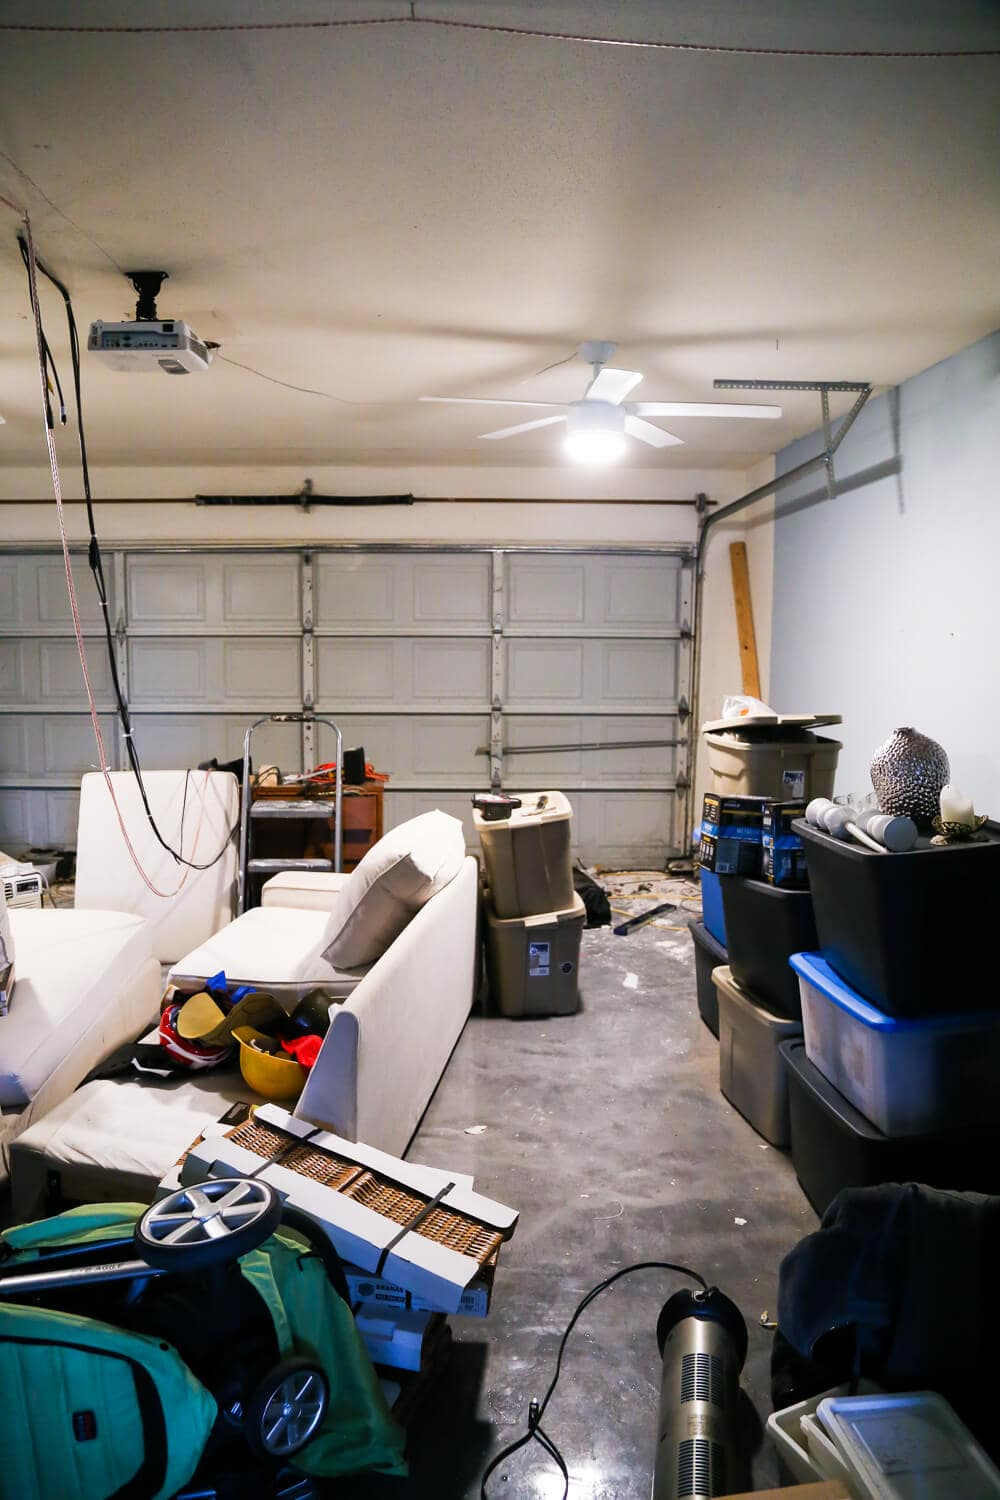 converting a room back into a garage